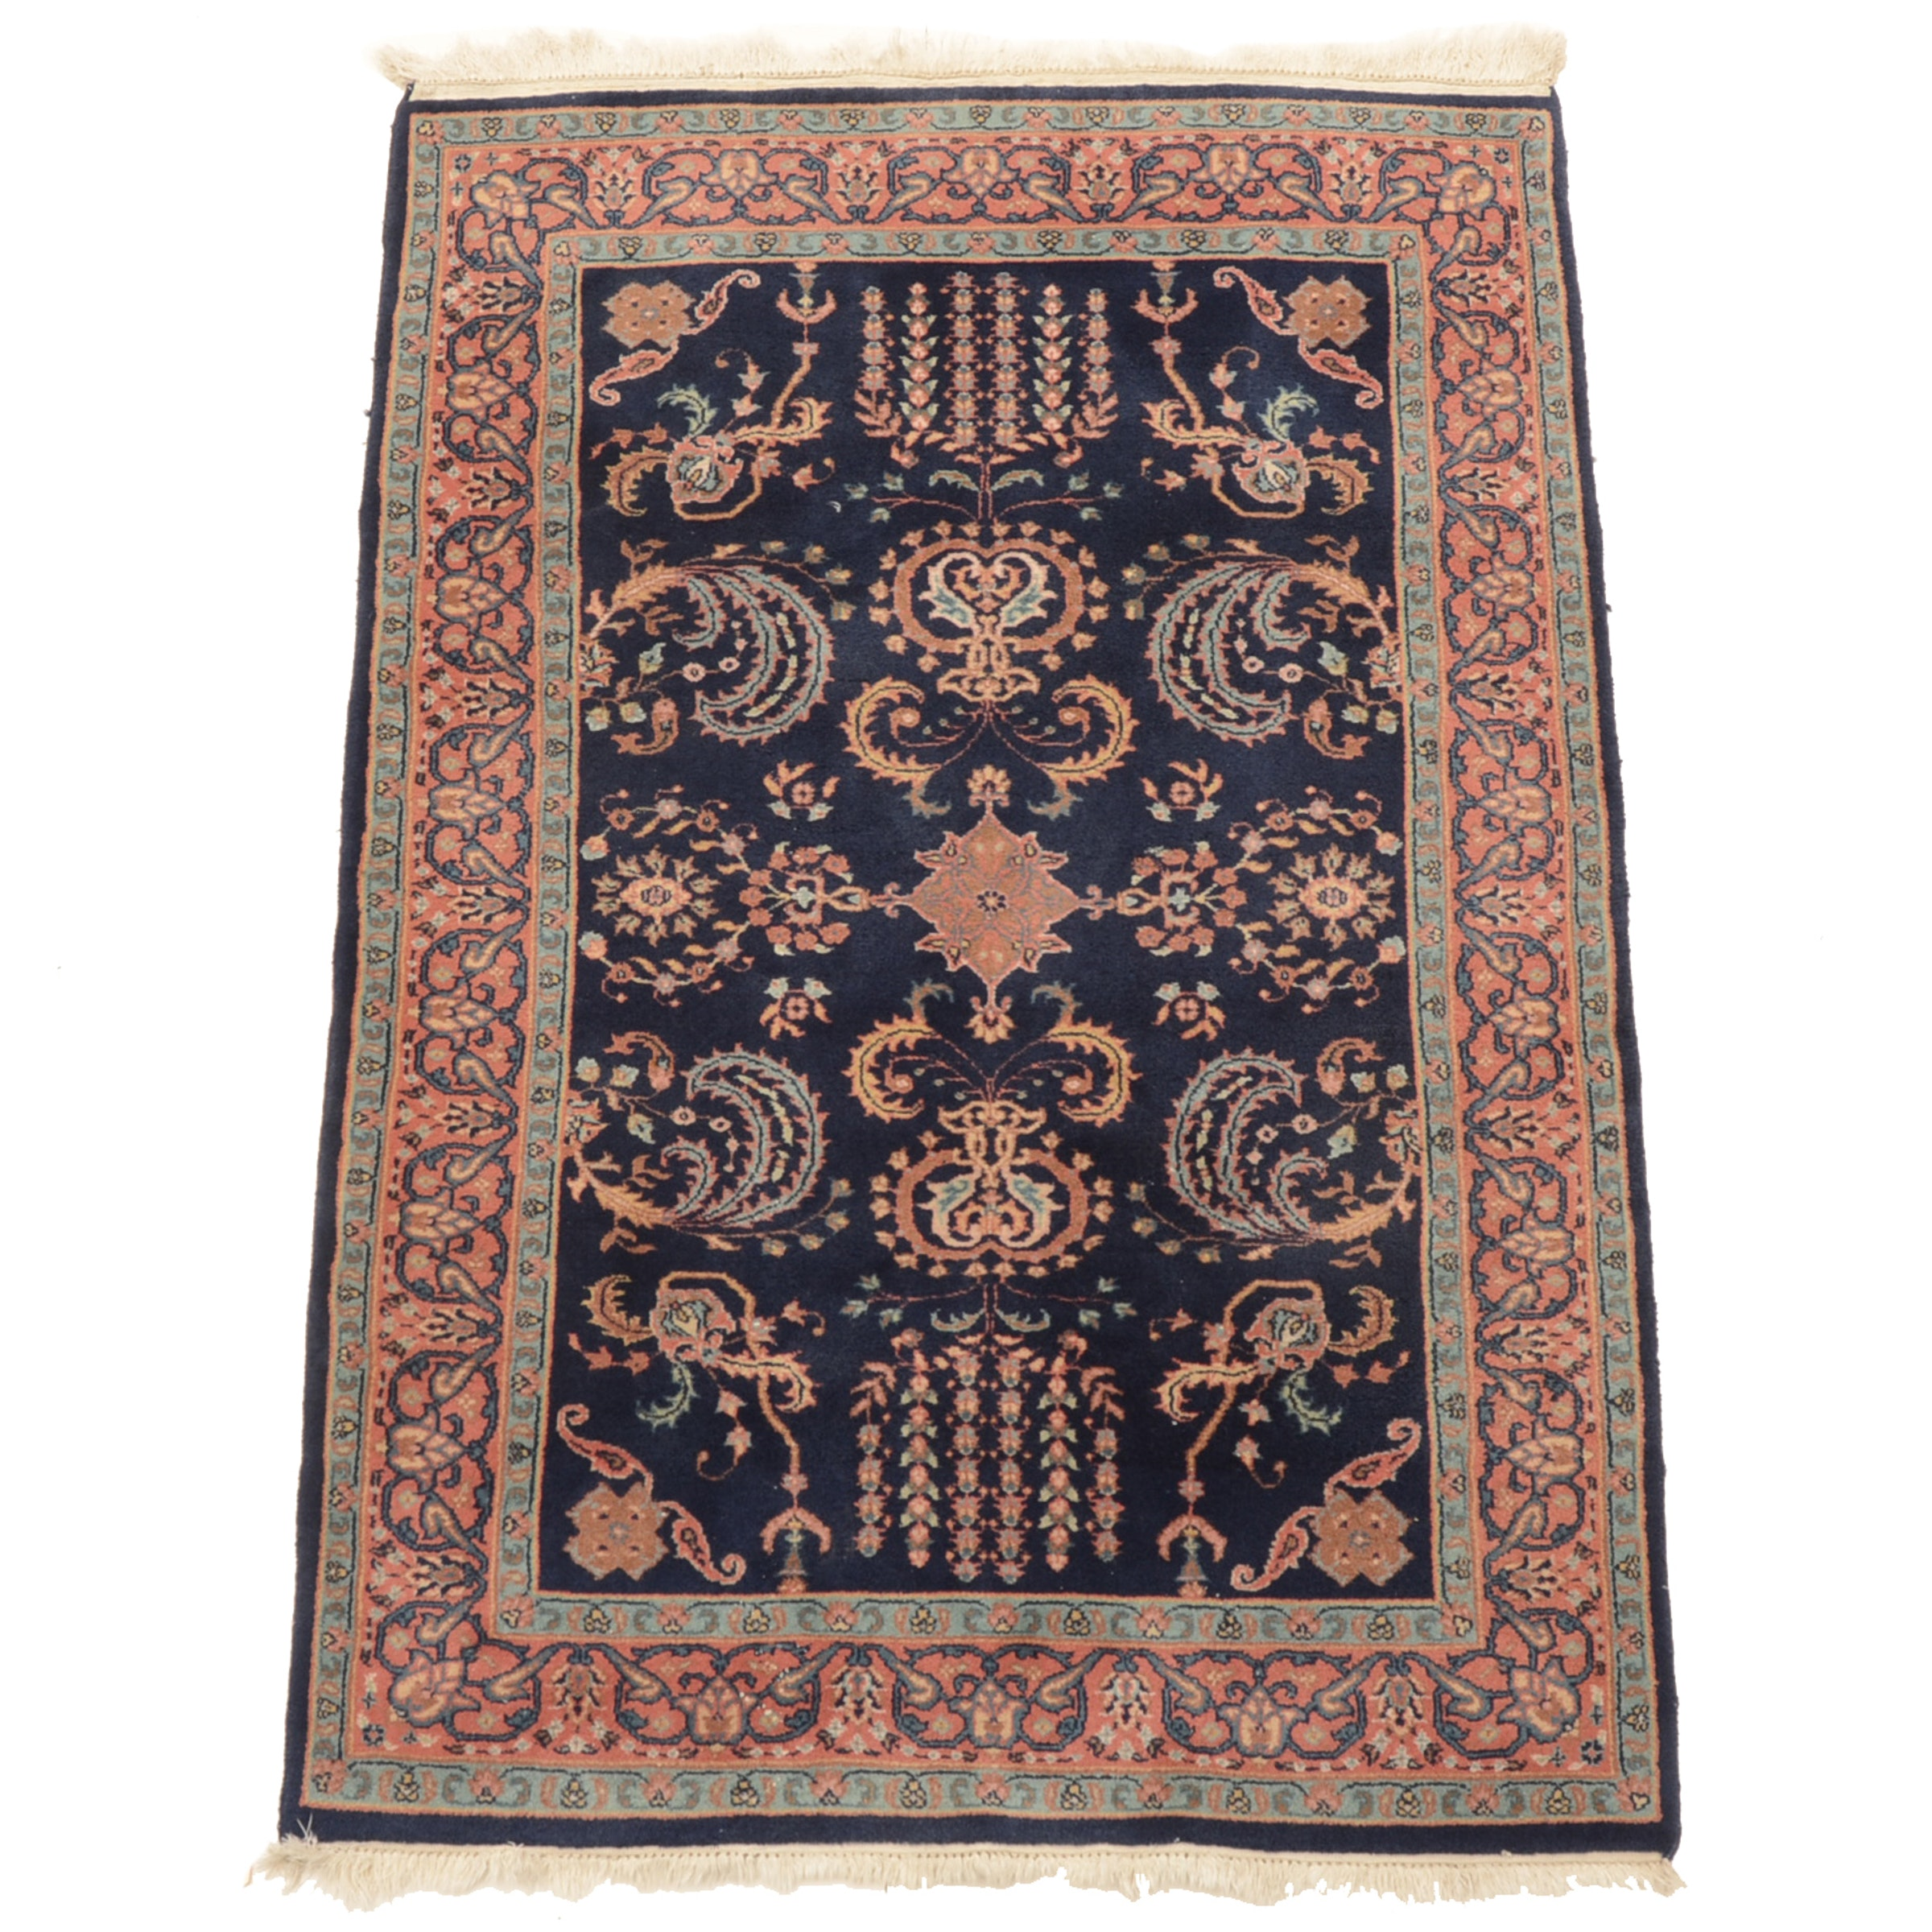 Hand-Knotted Indo-Persian Fereghan Style Wool Area Rug